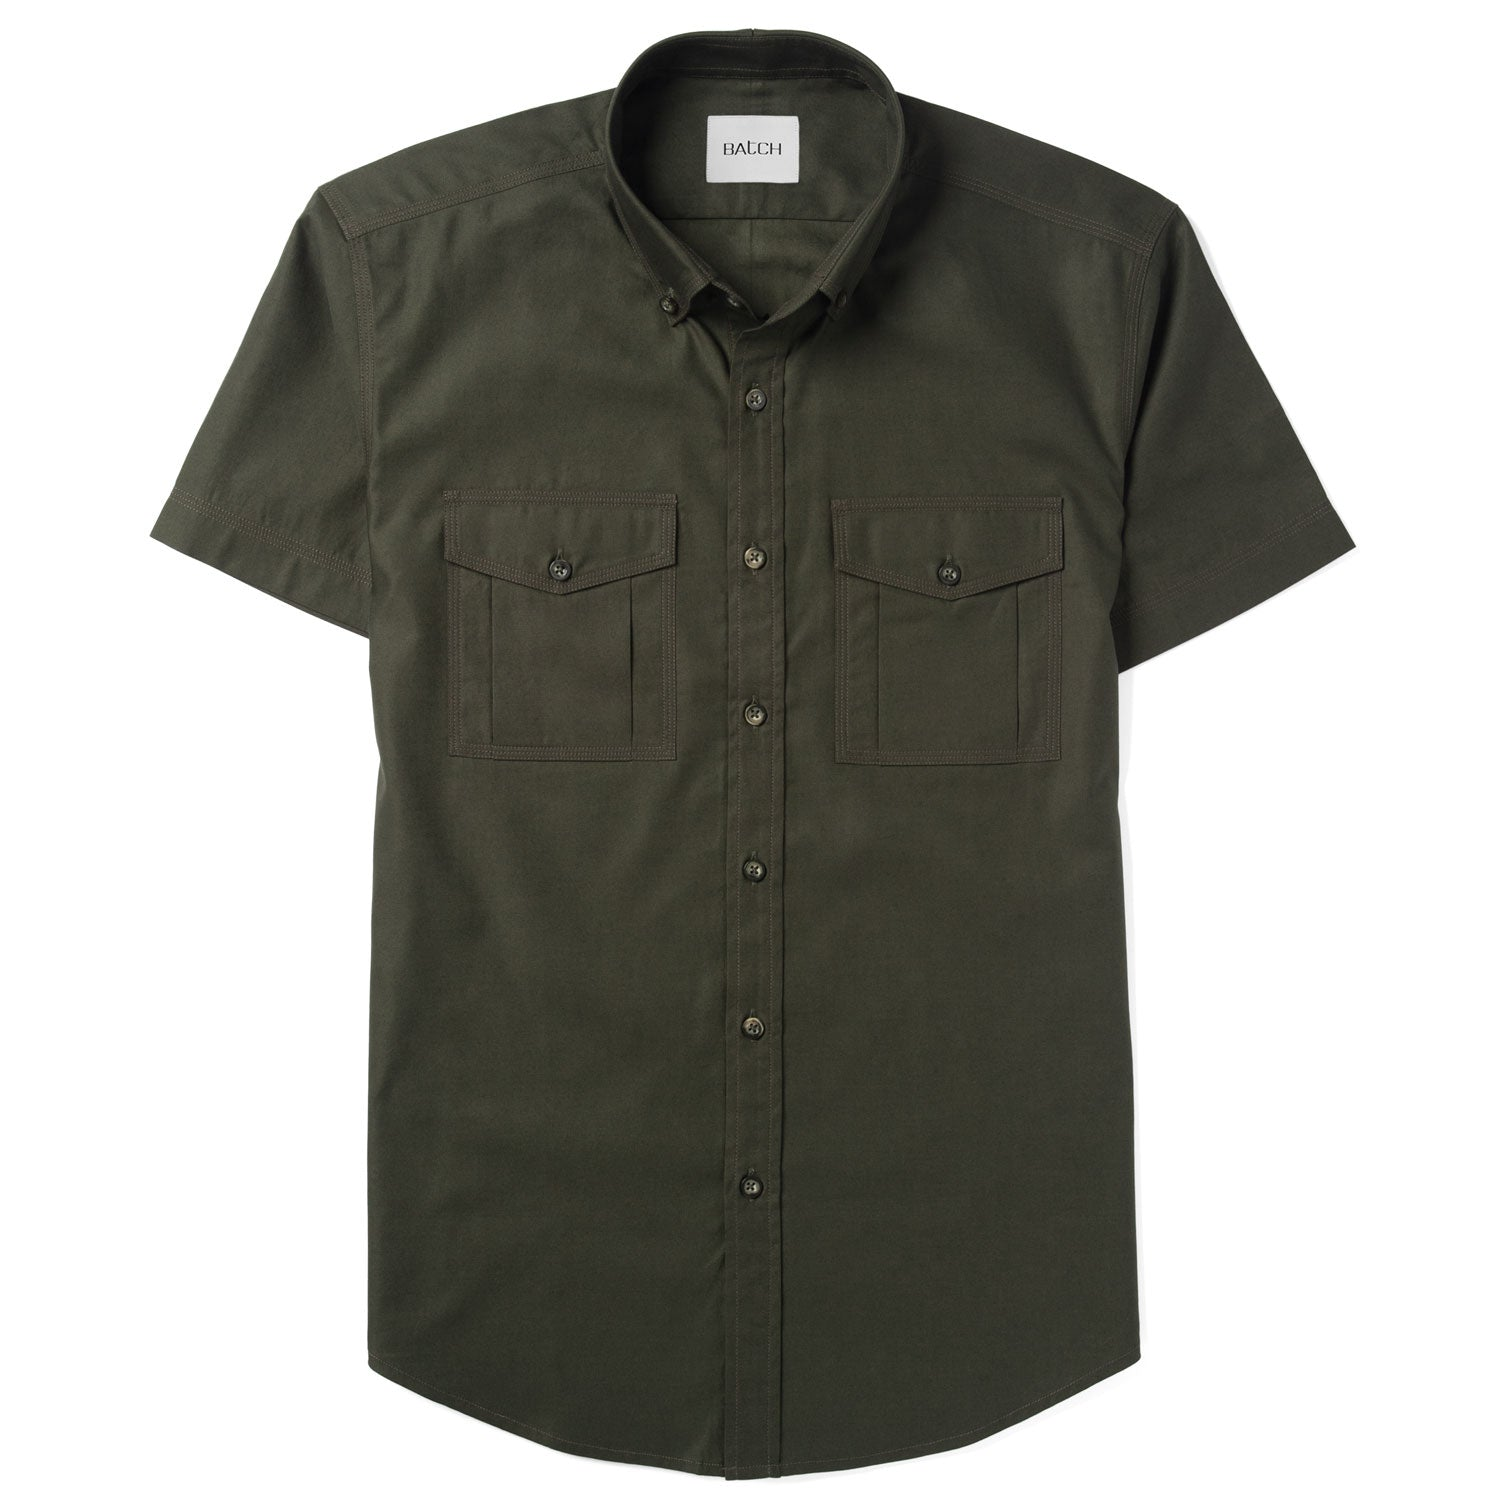 Distiller Short Sleeve Utility Shirt – Olive Green Mercerized Cotton